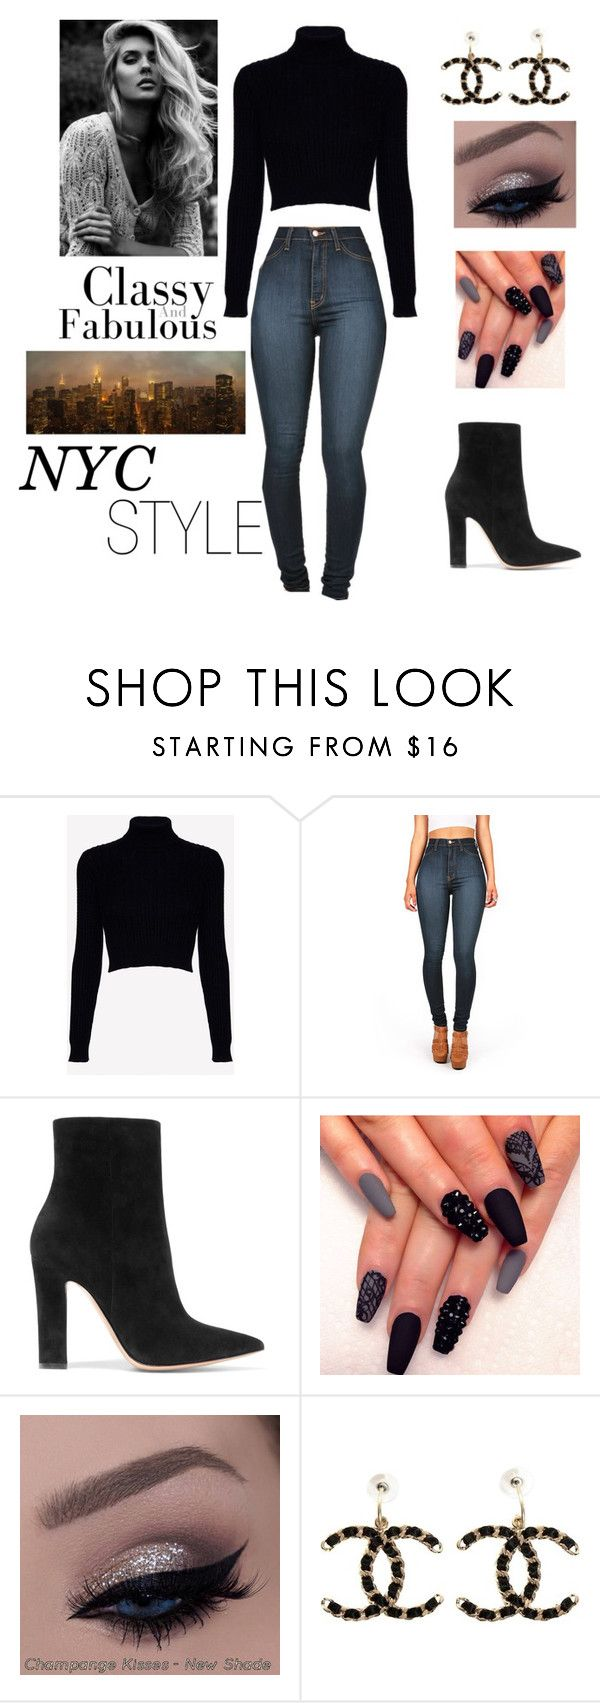 """nyc style"" by ailenebautista ❤ liked on Polyvore featuring Jack Wills, Vibrant, Gianvito Rossi, Chanel and NYC"